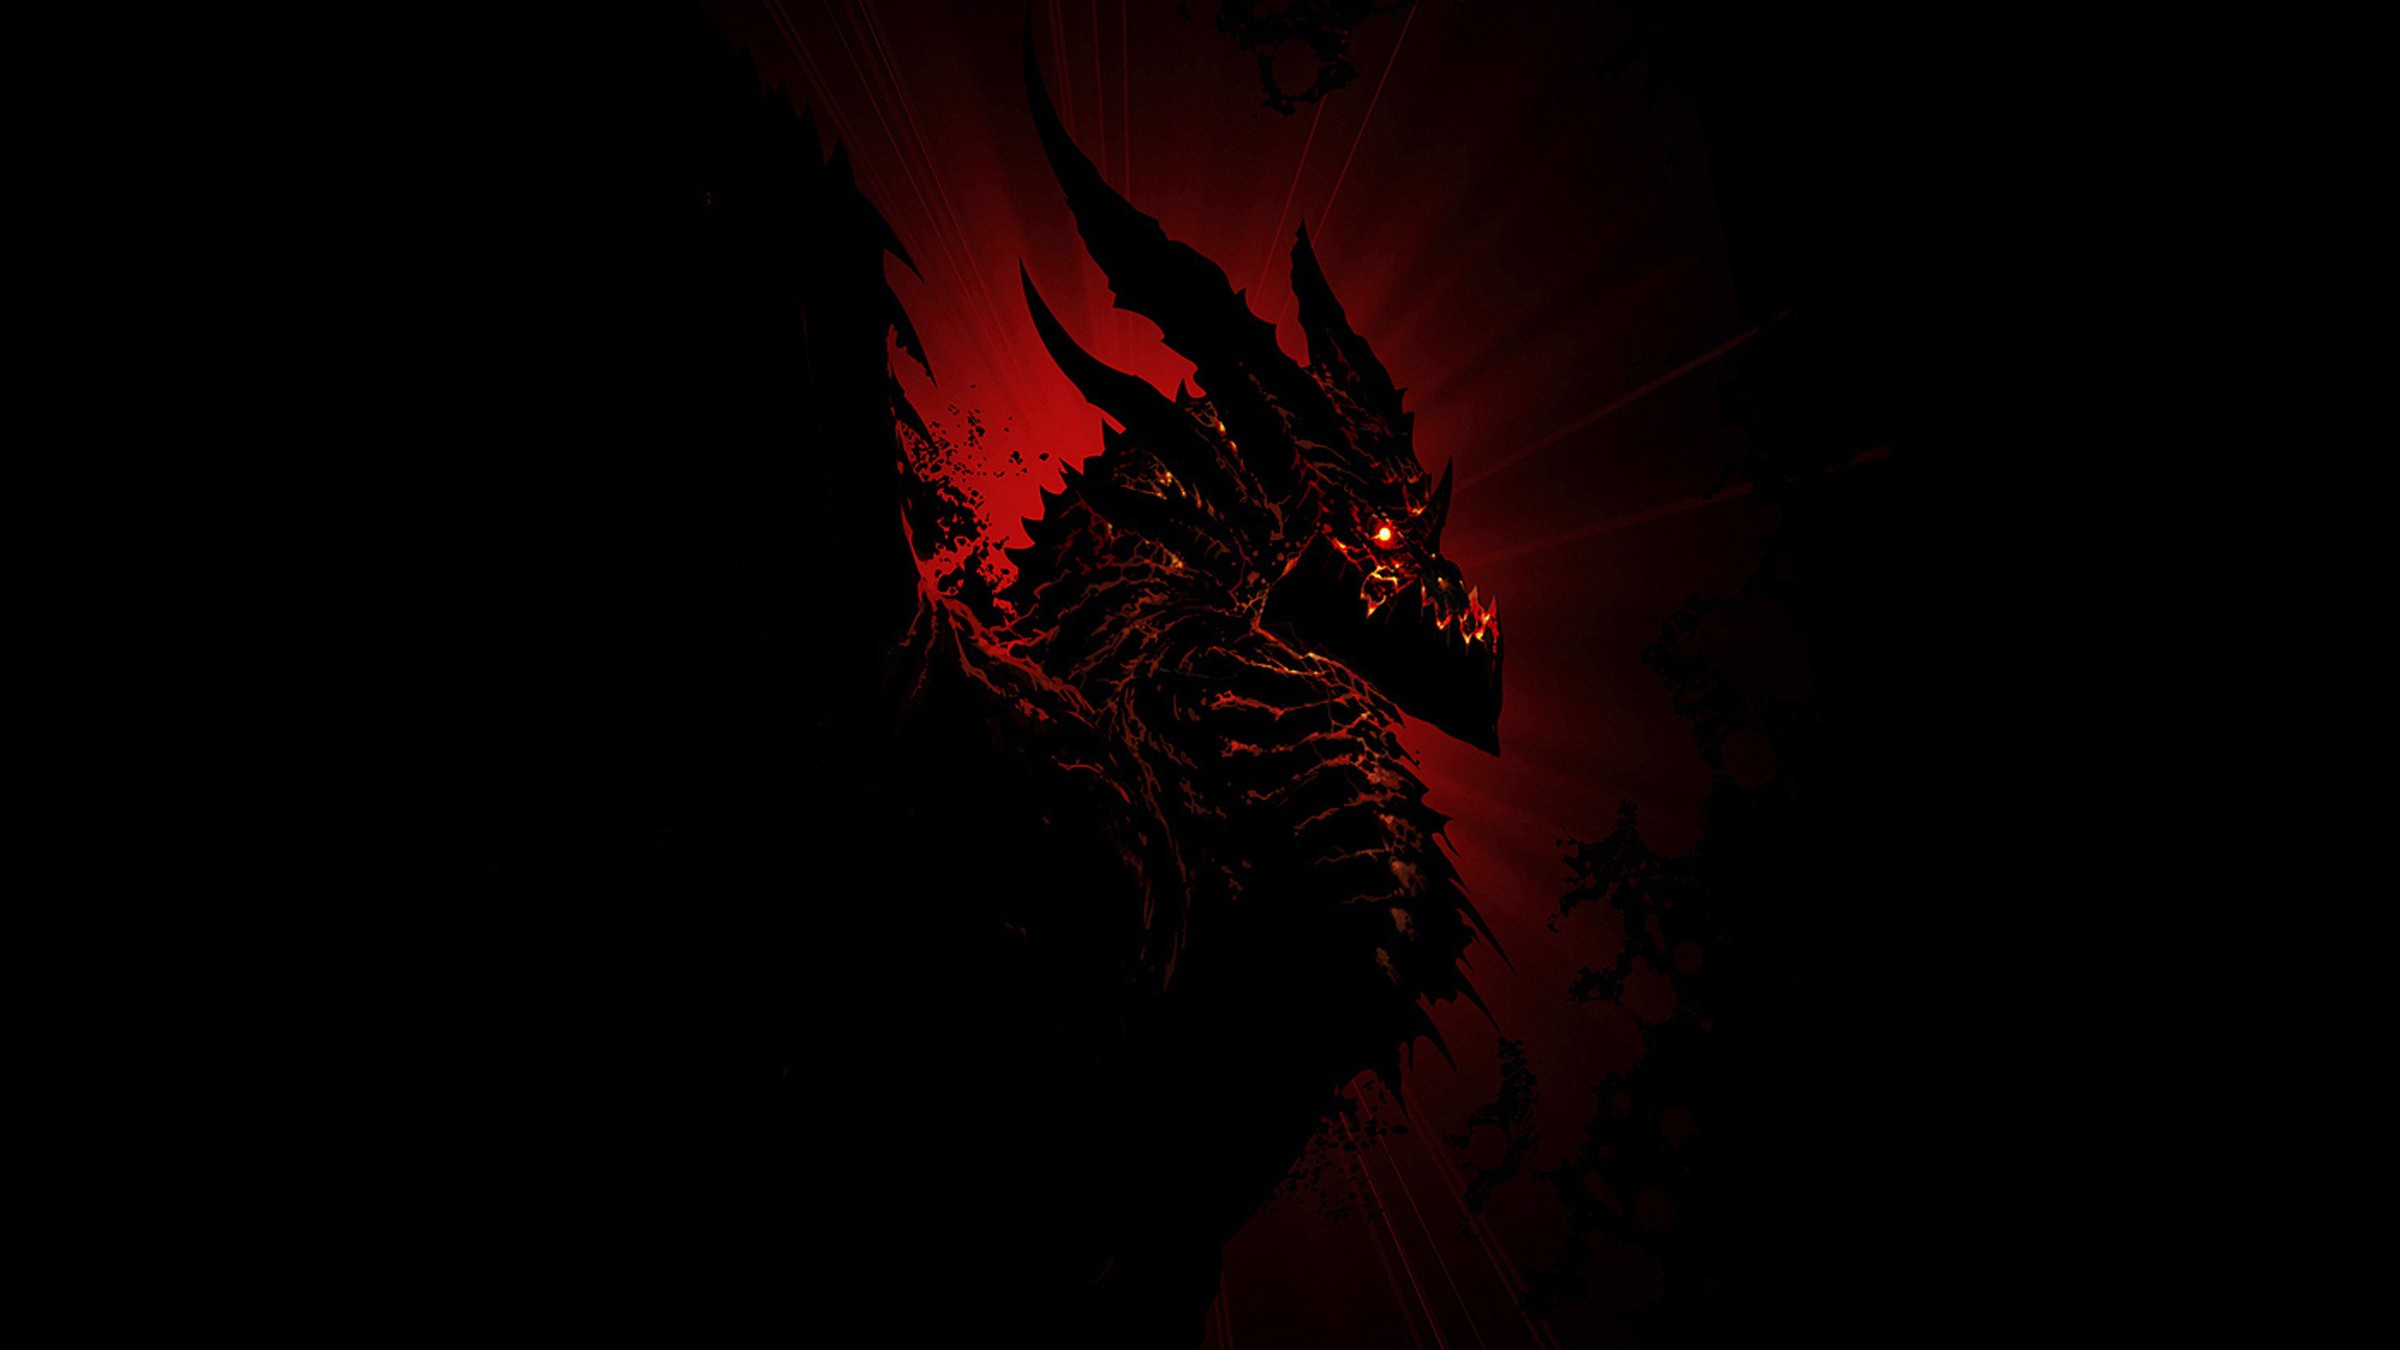 Dragon shadow wallpaper allwallpaper 6124 pc en hd 169 2400x1350 2048x1152 voltagebd Gallery